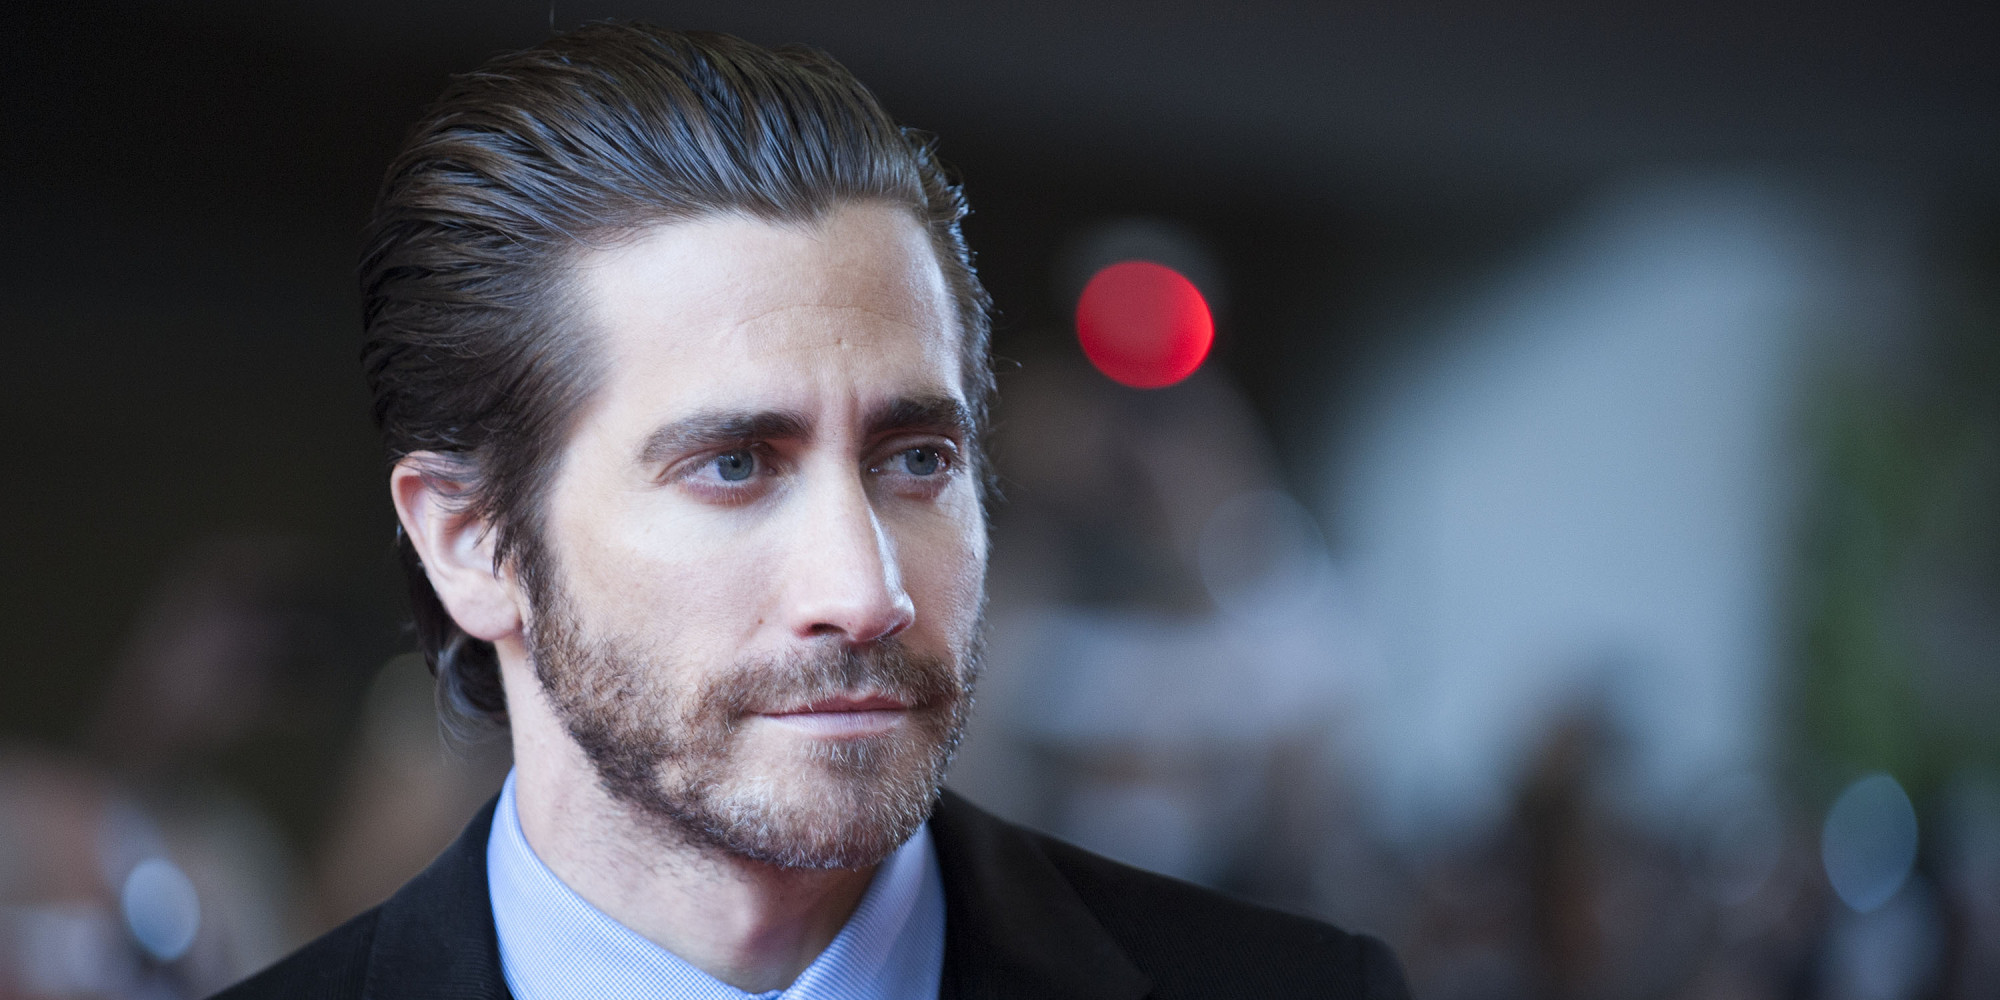 jake-gyllenhaal-eyed-for-boston-marathon-bombing-movie-stronger